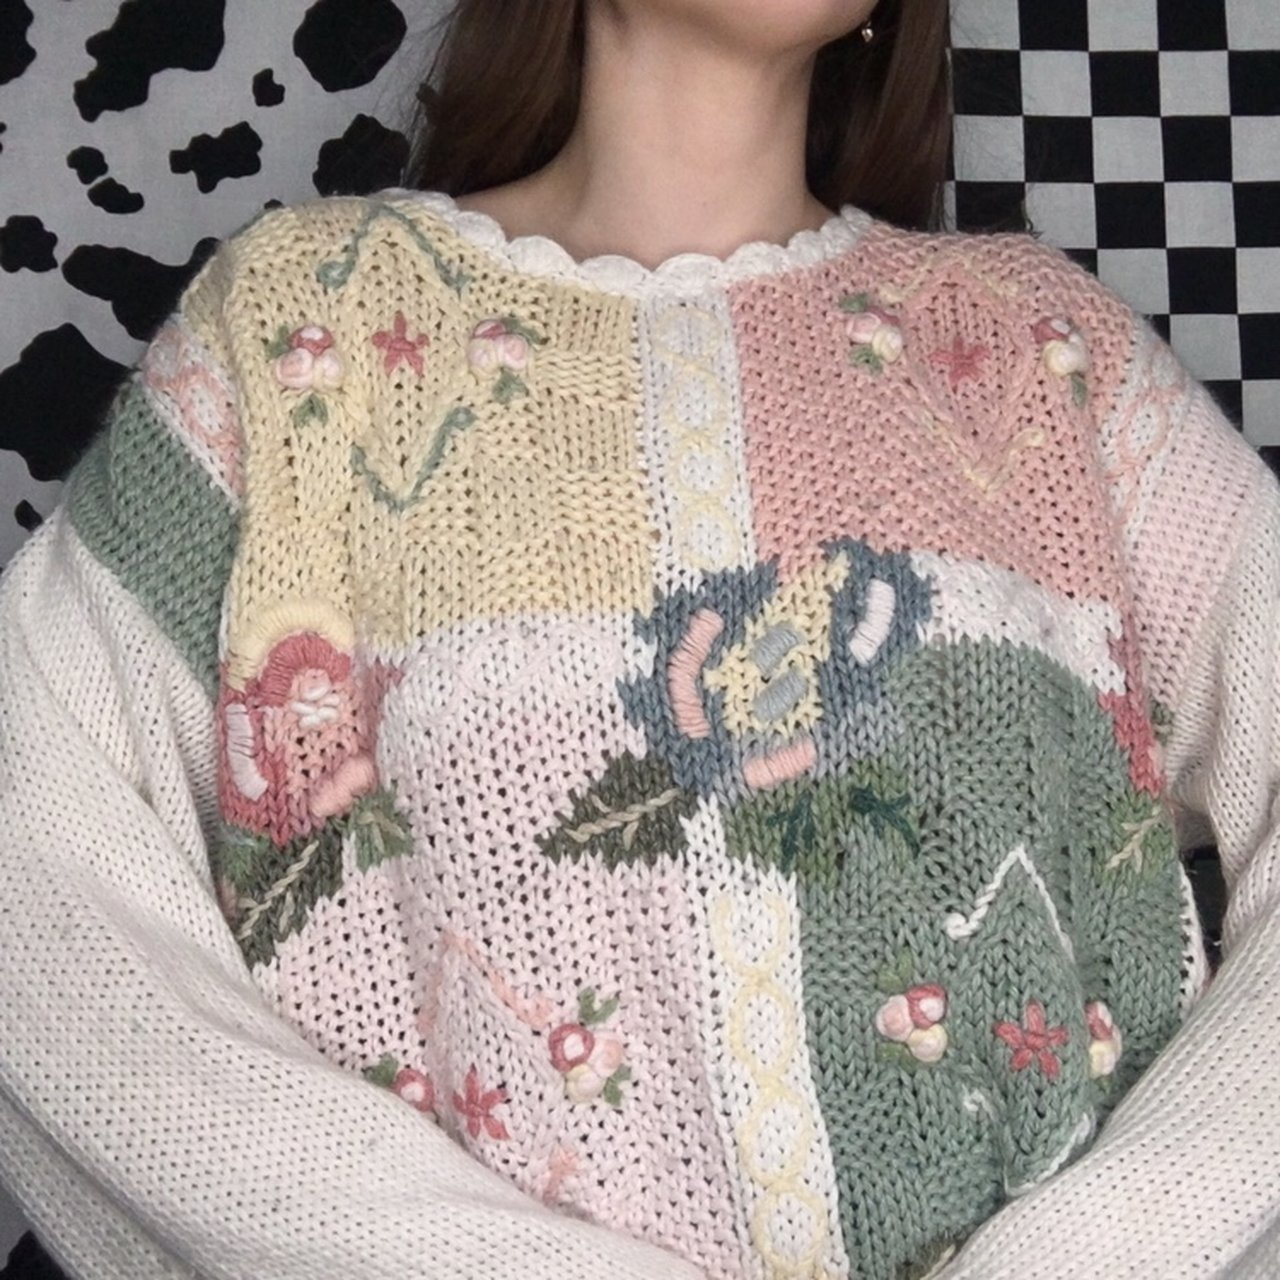 0277a56870 Amazing vintage 80s grandma knit sweater. Cute af pastel and - Depop